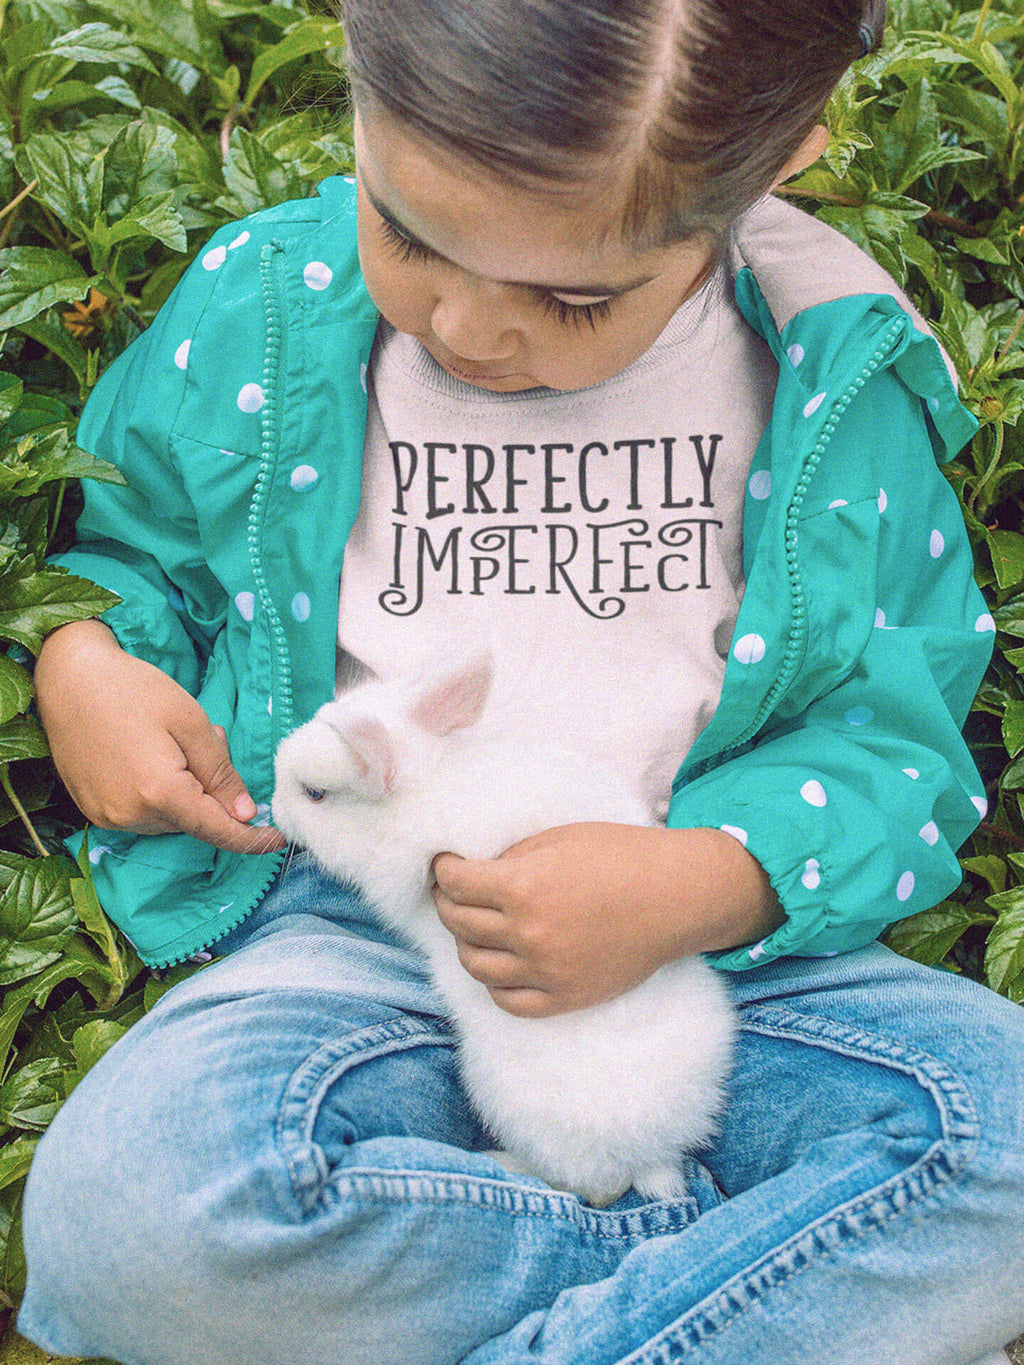 girl petting bunny wearing perfectly imperfect t-shirt